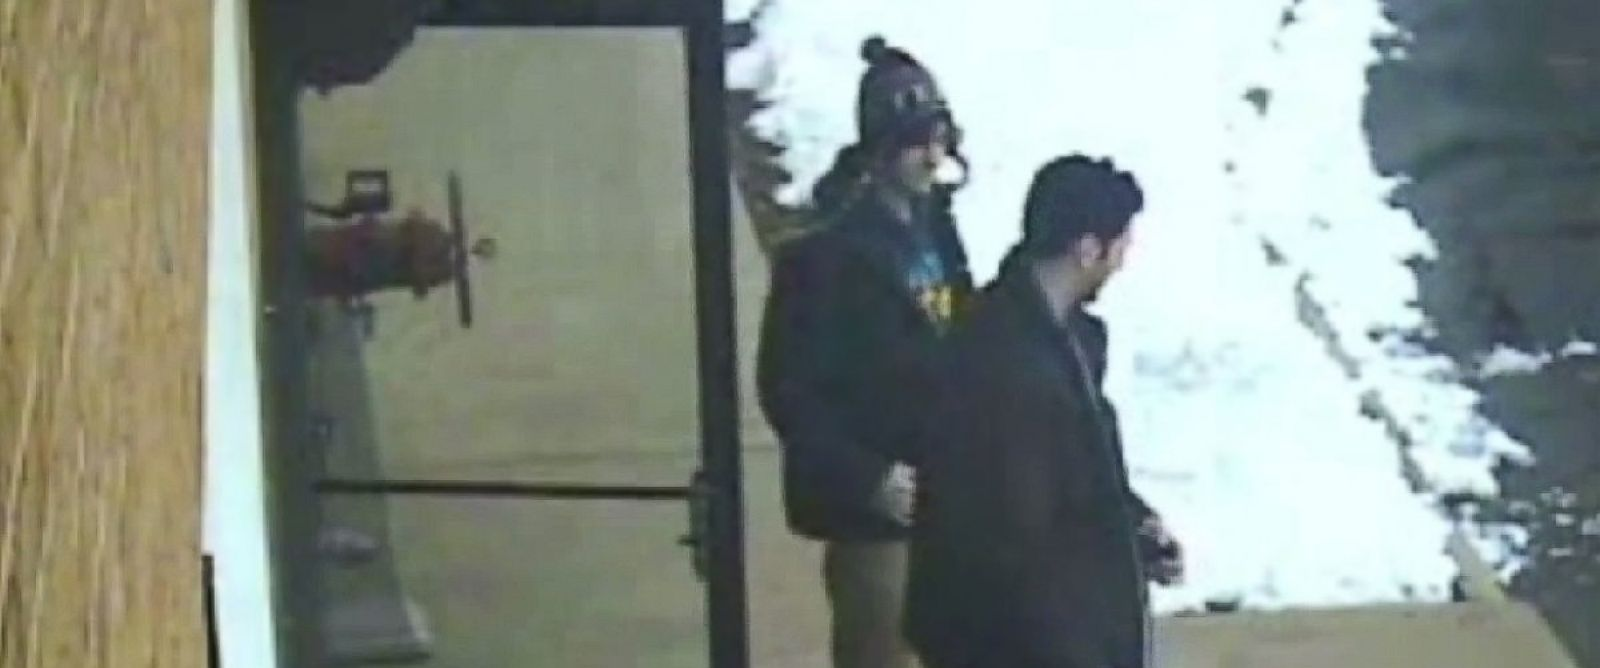 PHOTO: Surveillance video released at the trial of accused Boston Marathon bomber Dzhokhar Tsarnaev shows the defendant, left, and his brother Tamerlan, right, outside a New Hampshire gun store.